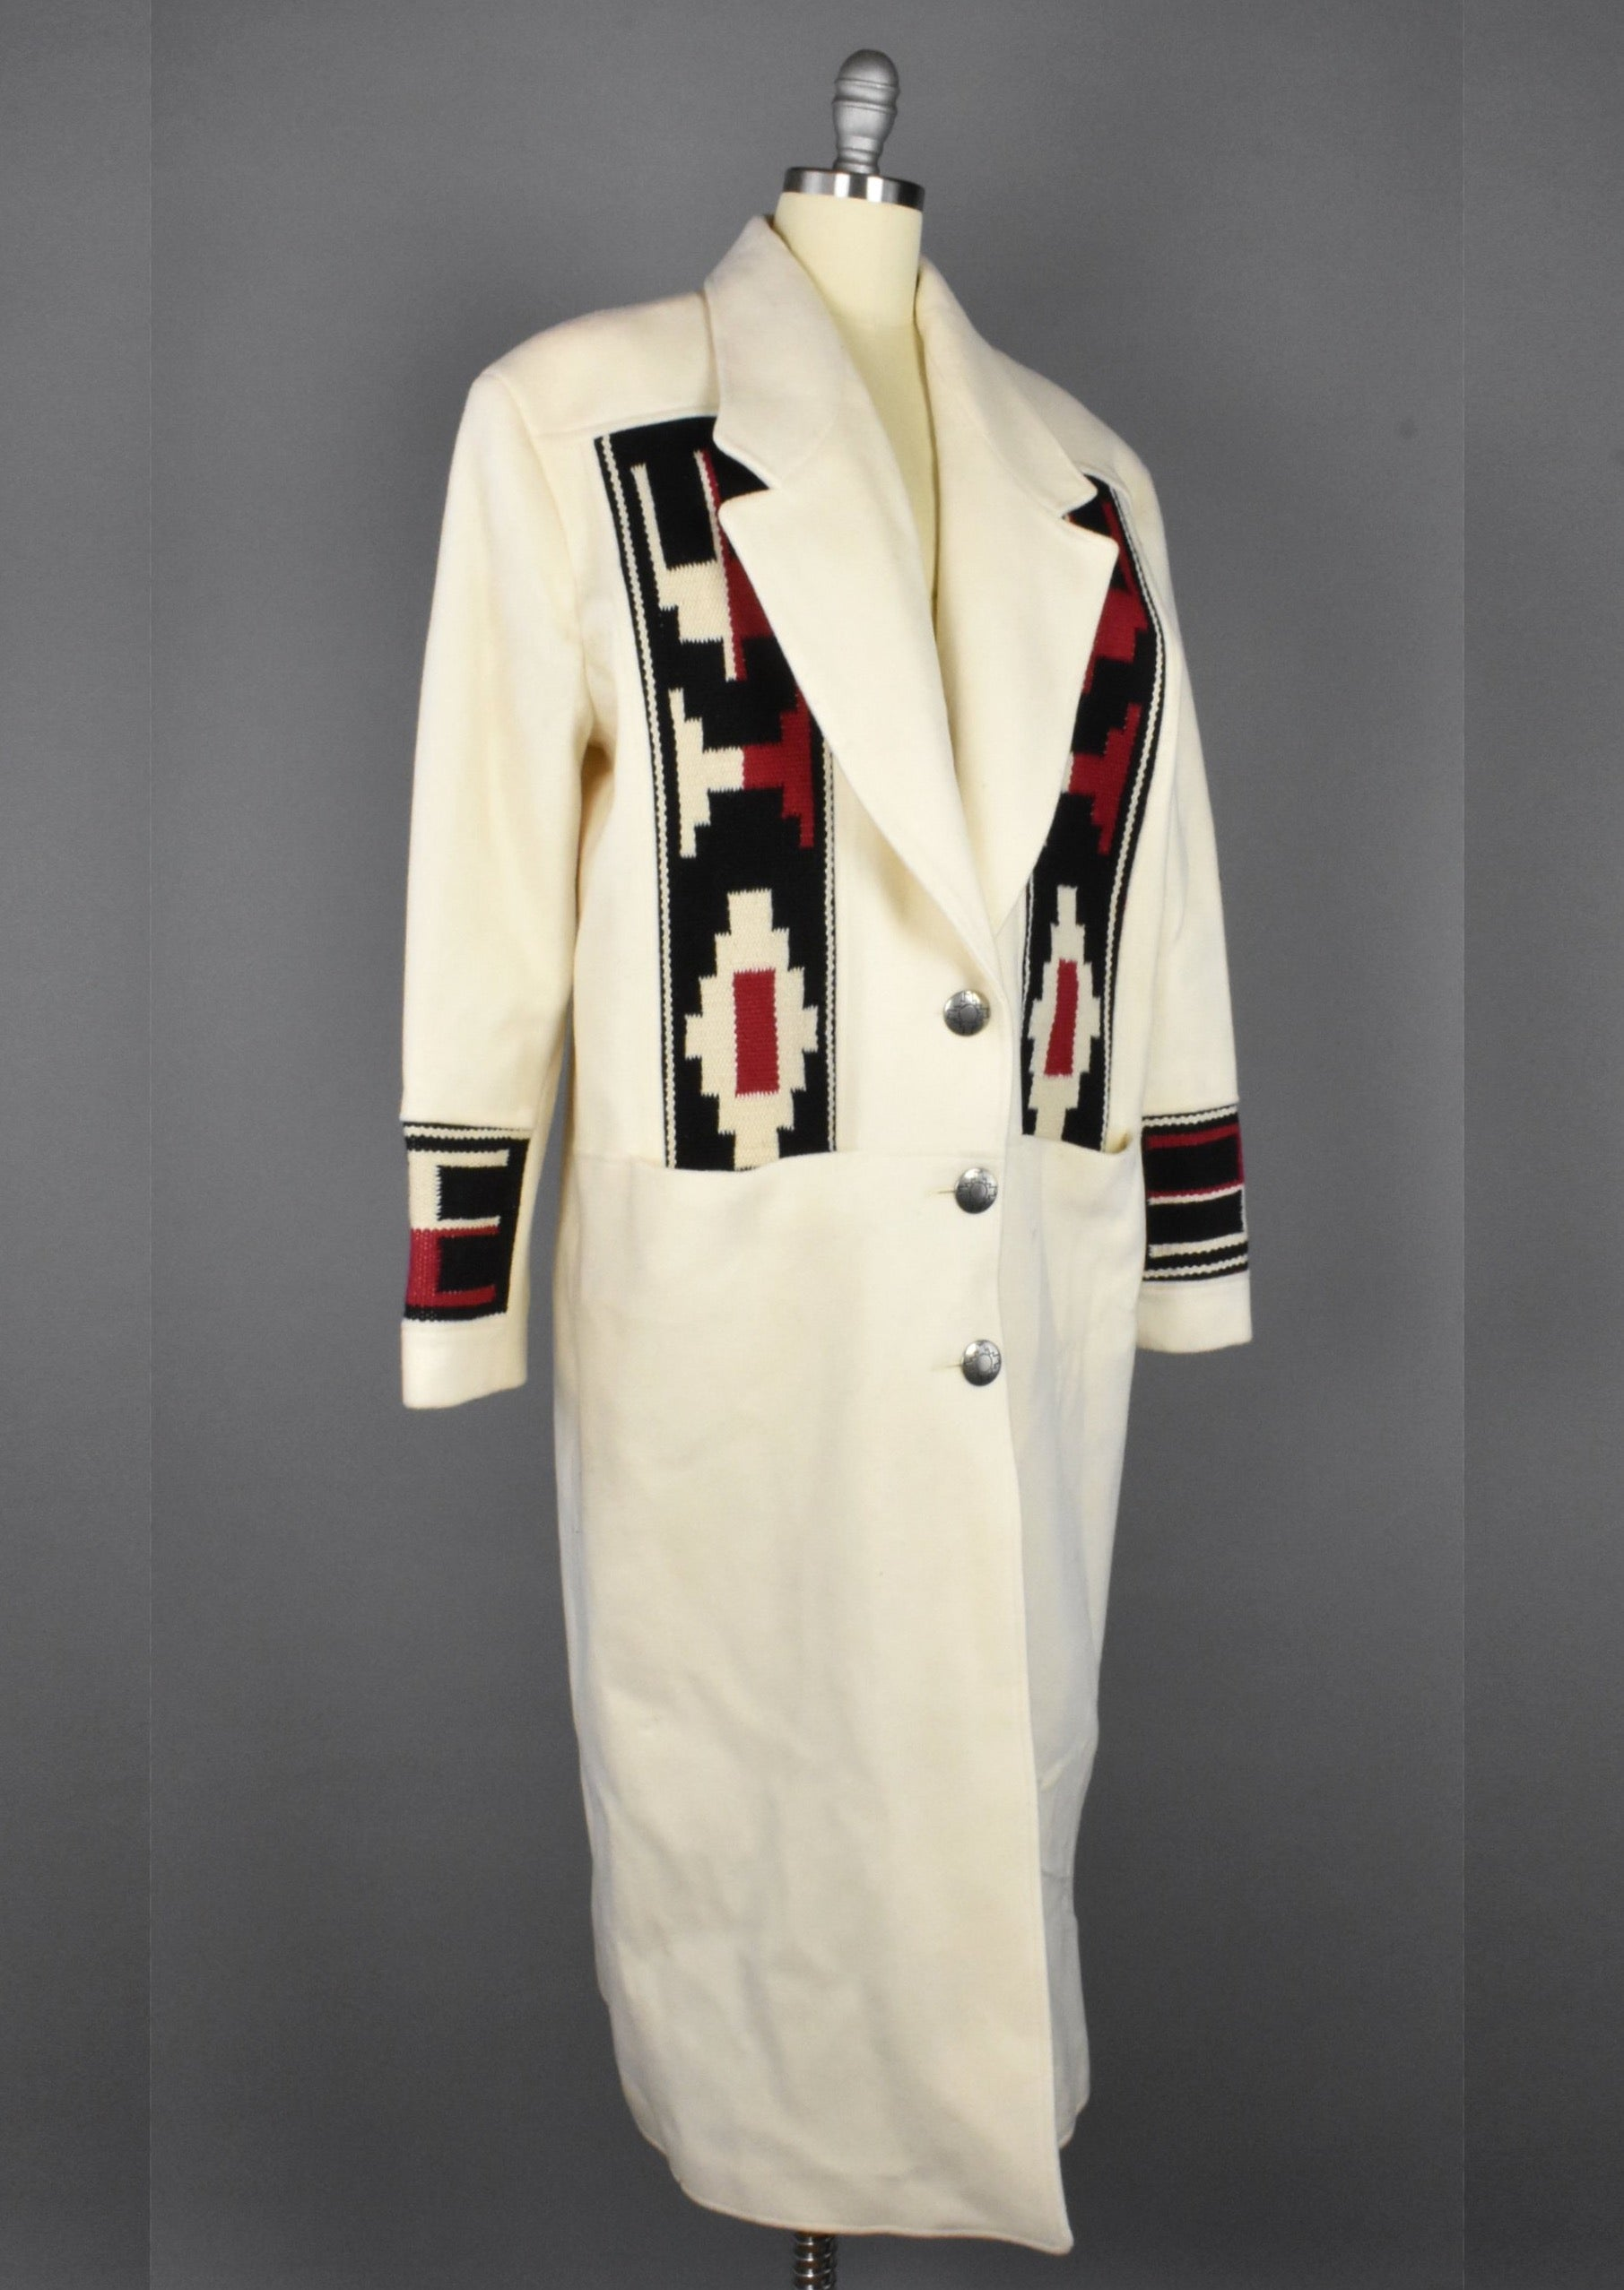 Vintage Southwestern Blanket Coat by Pioneer Wear